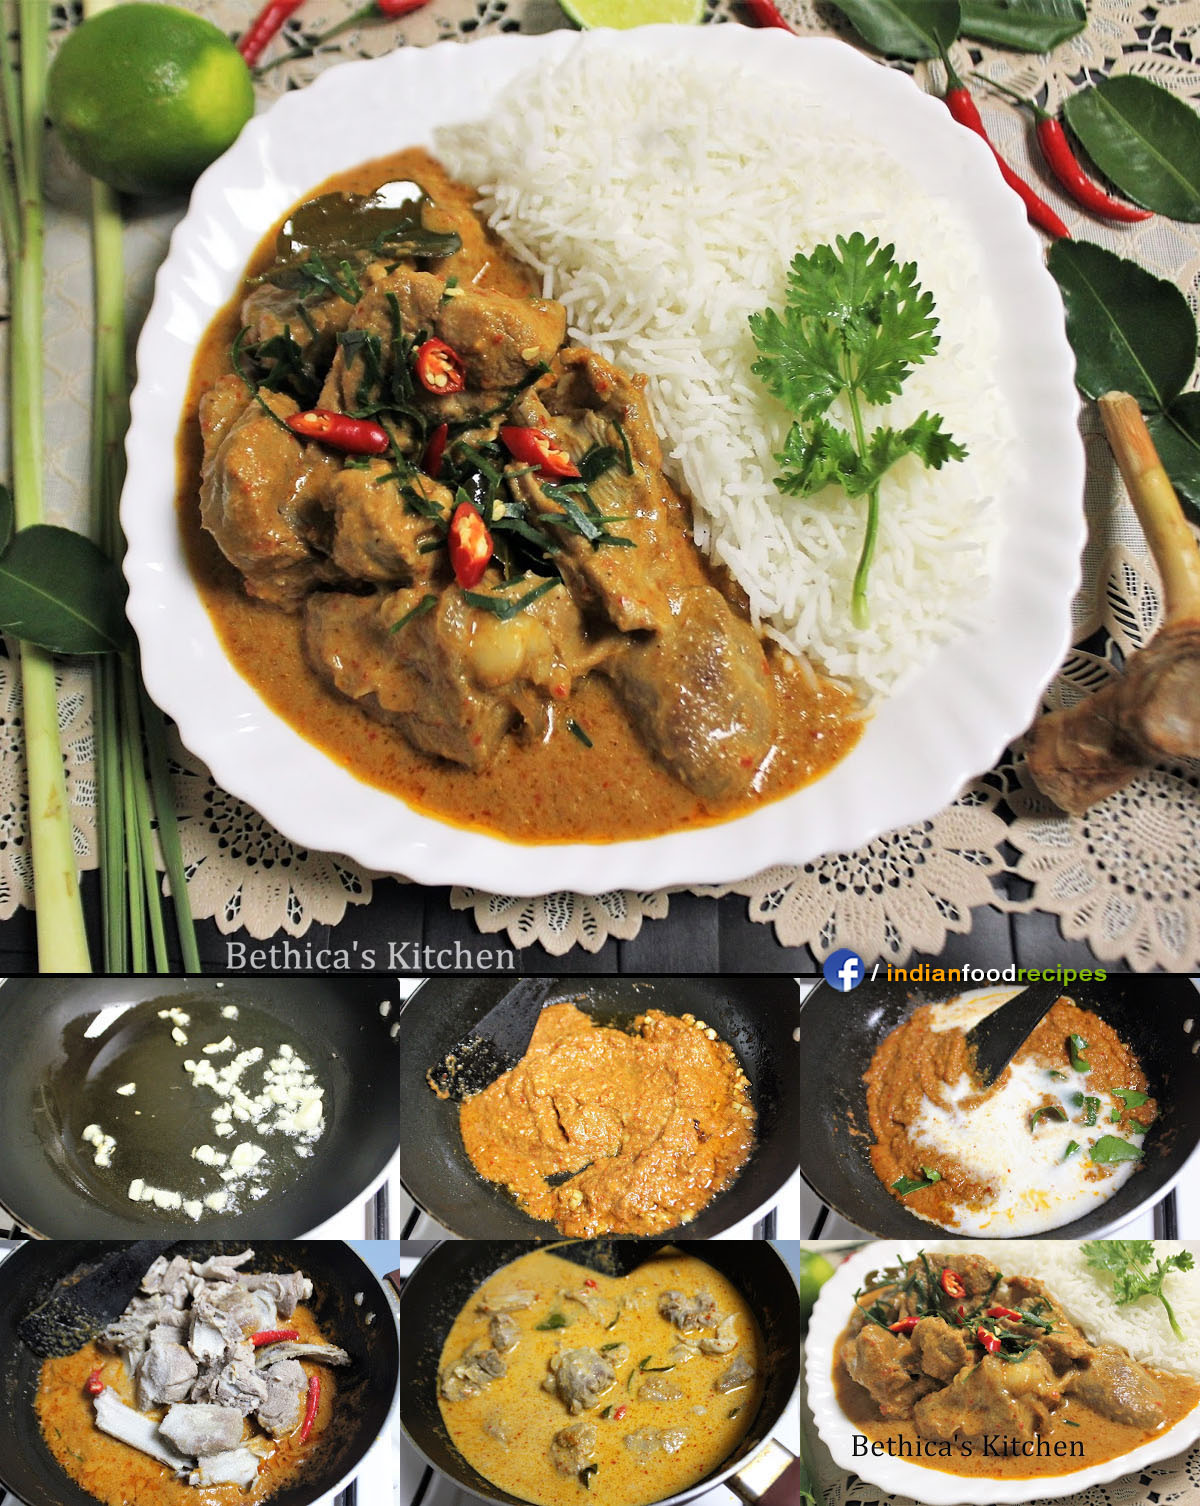 Panang Curry with Mutton (Indo-Thai) recipe step by step pictures